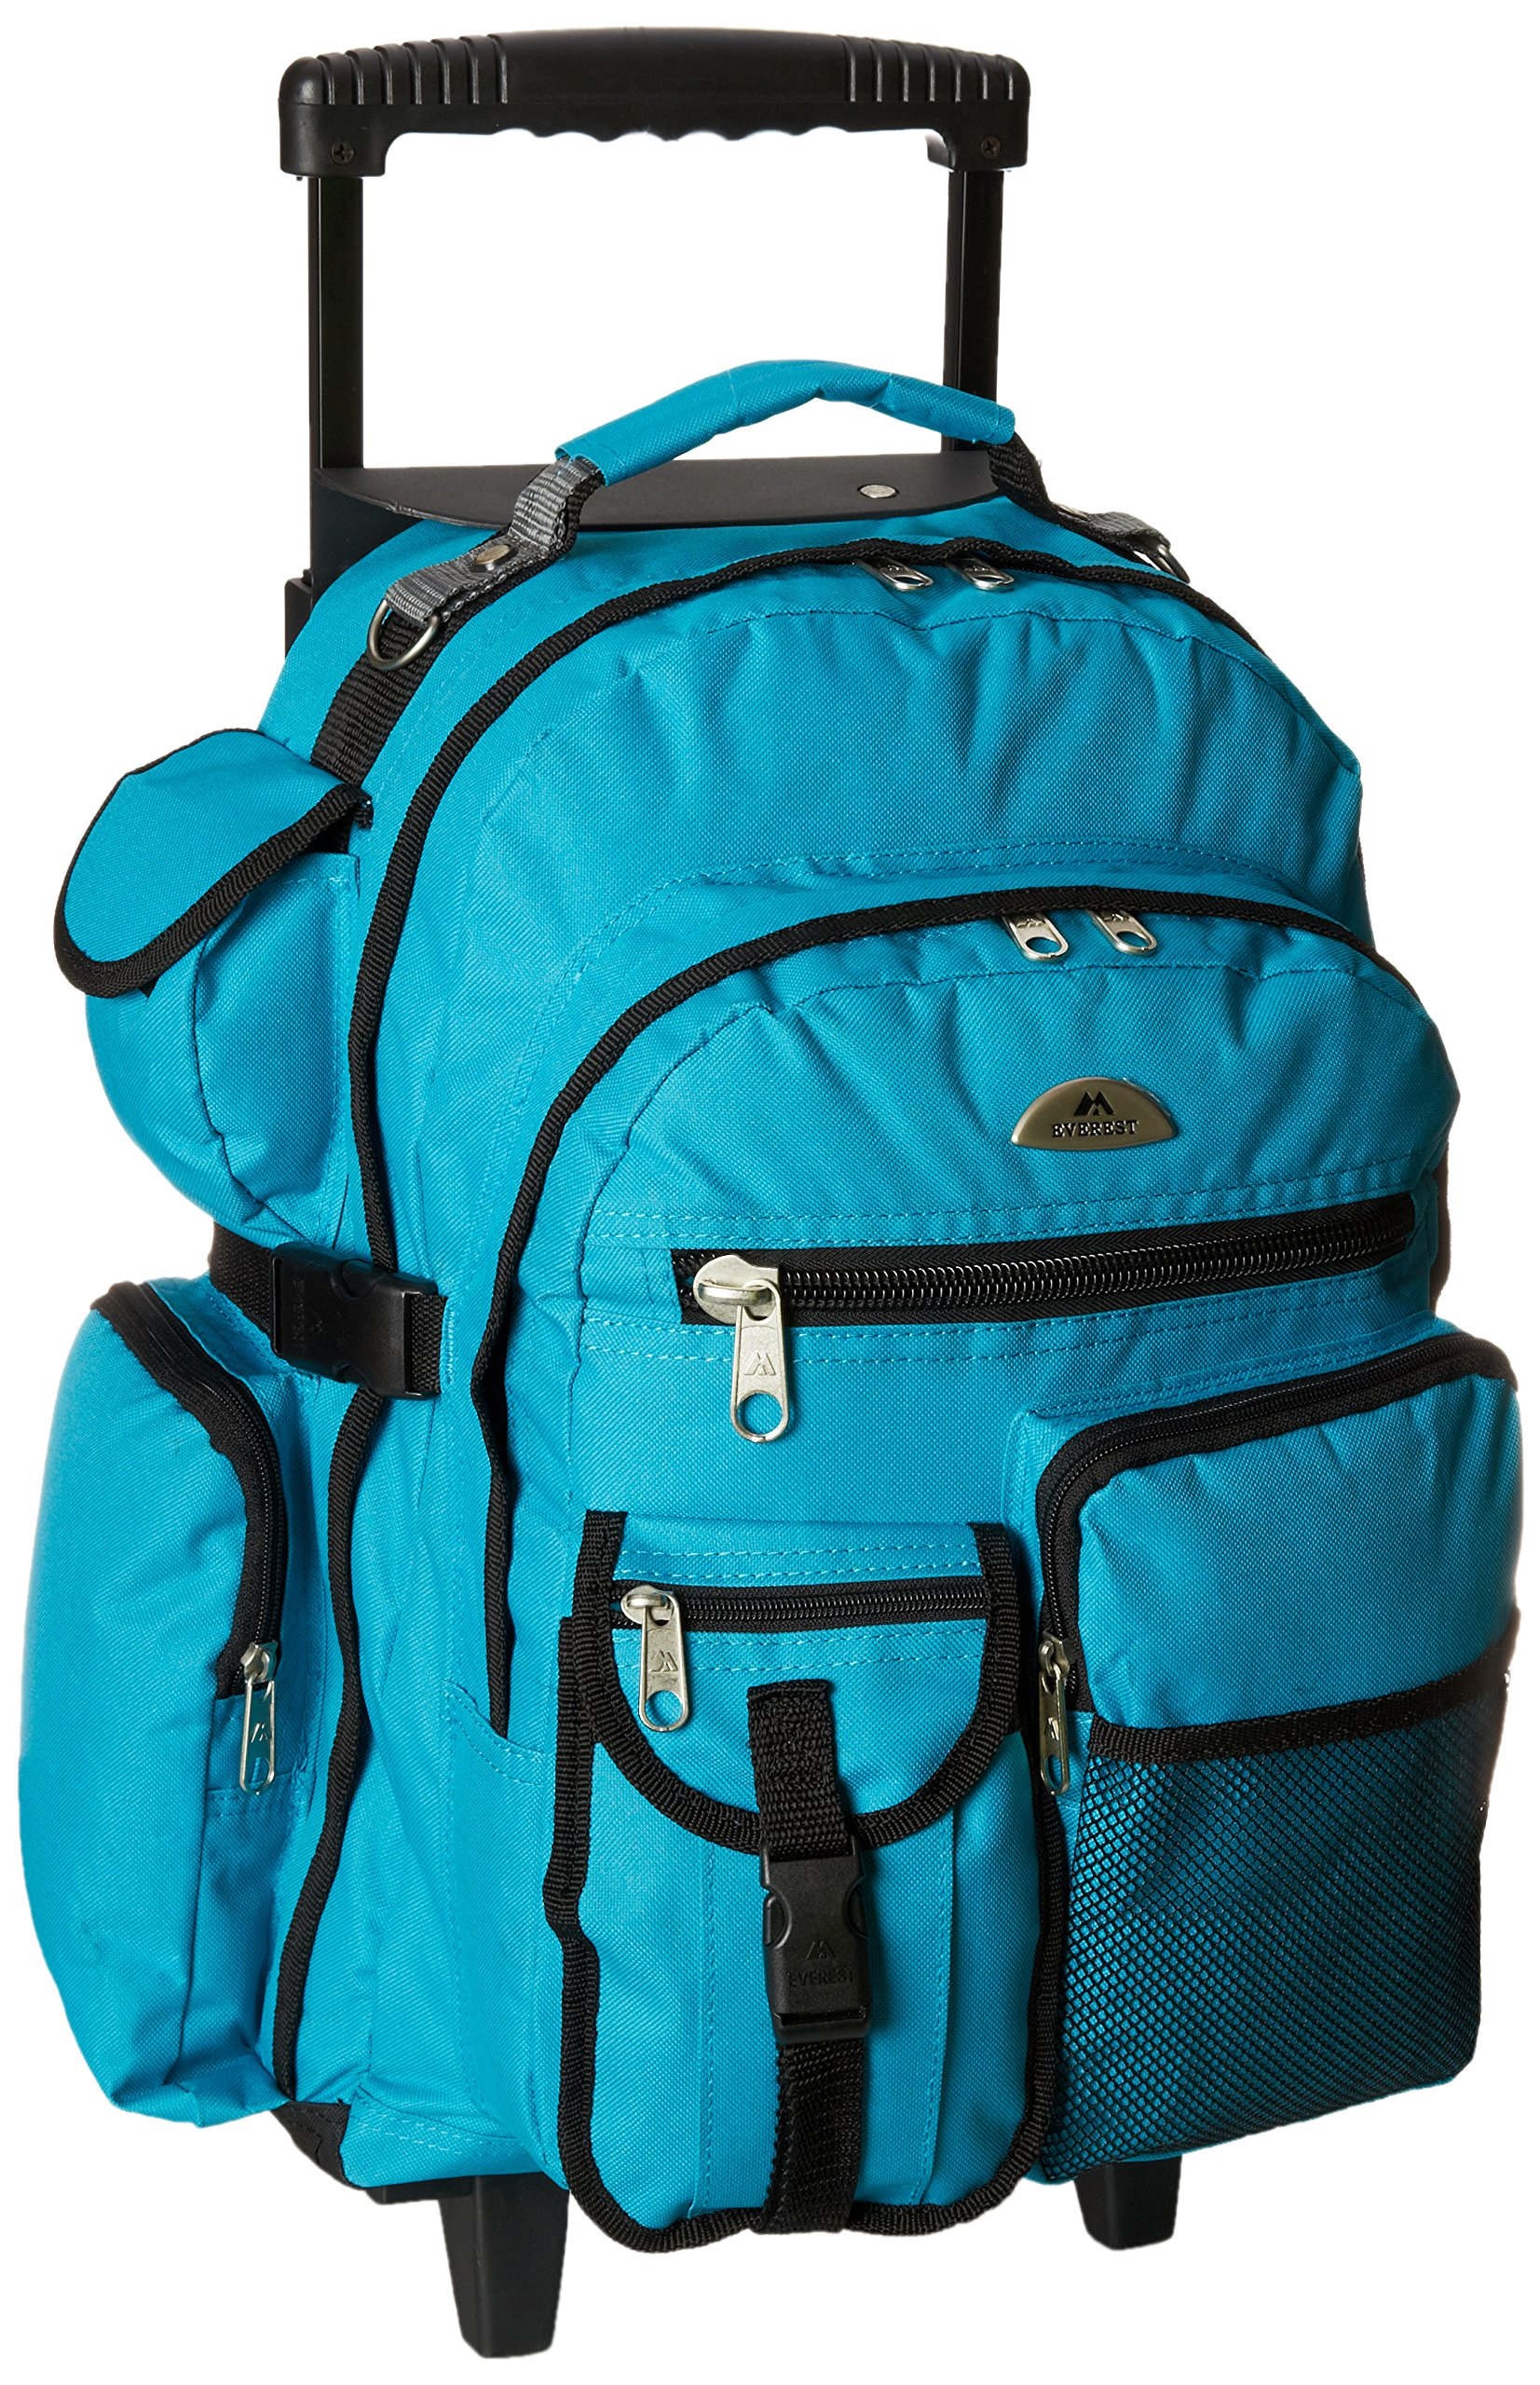 Everest Deluxe Wheeled Backpack, Turquoise, One Size by Everest